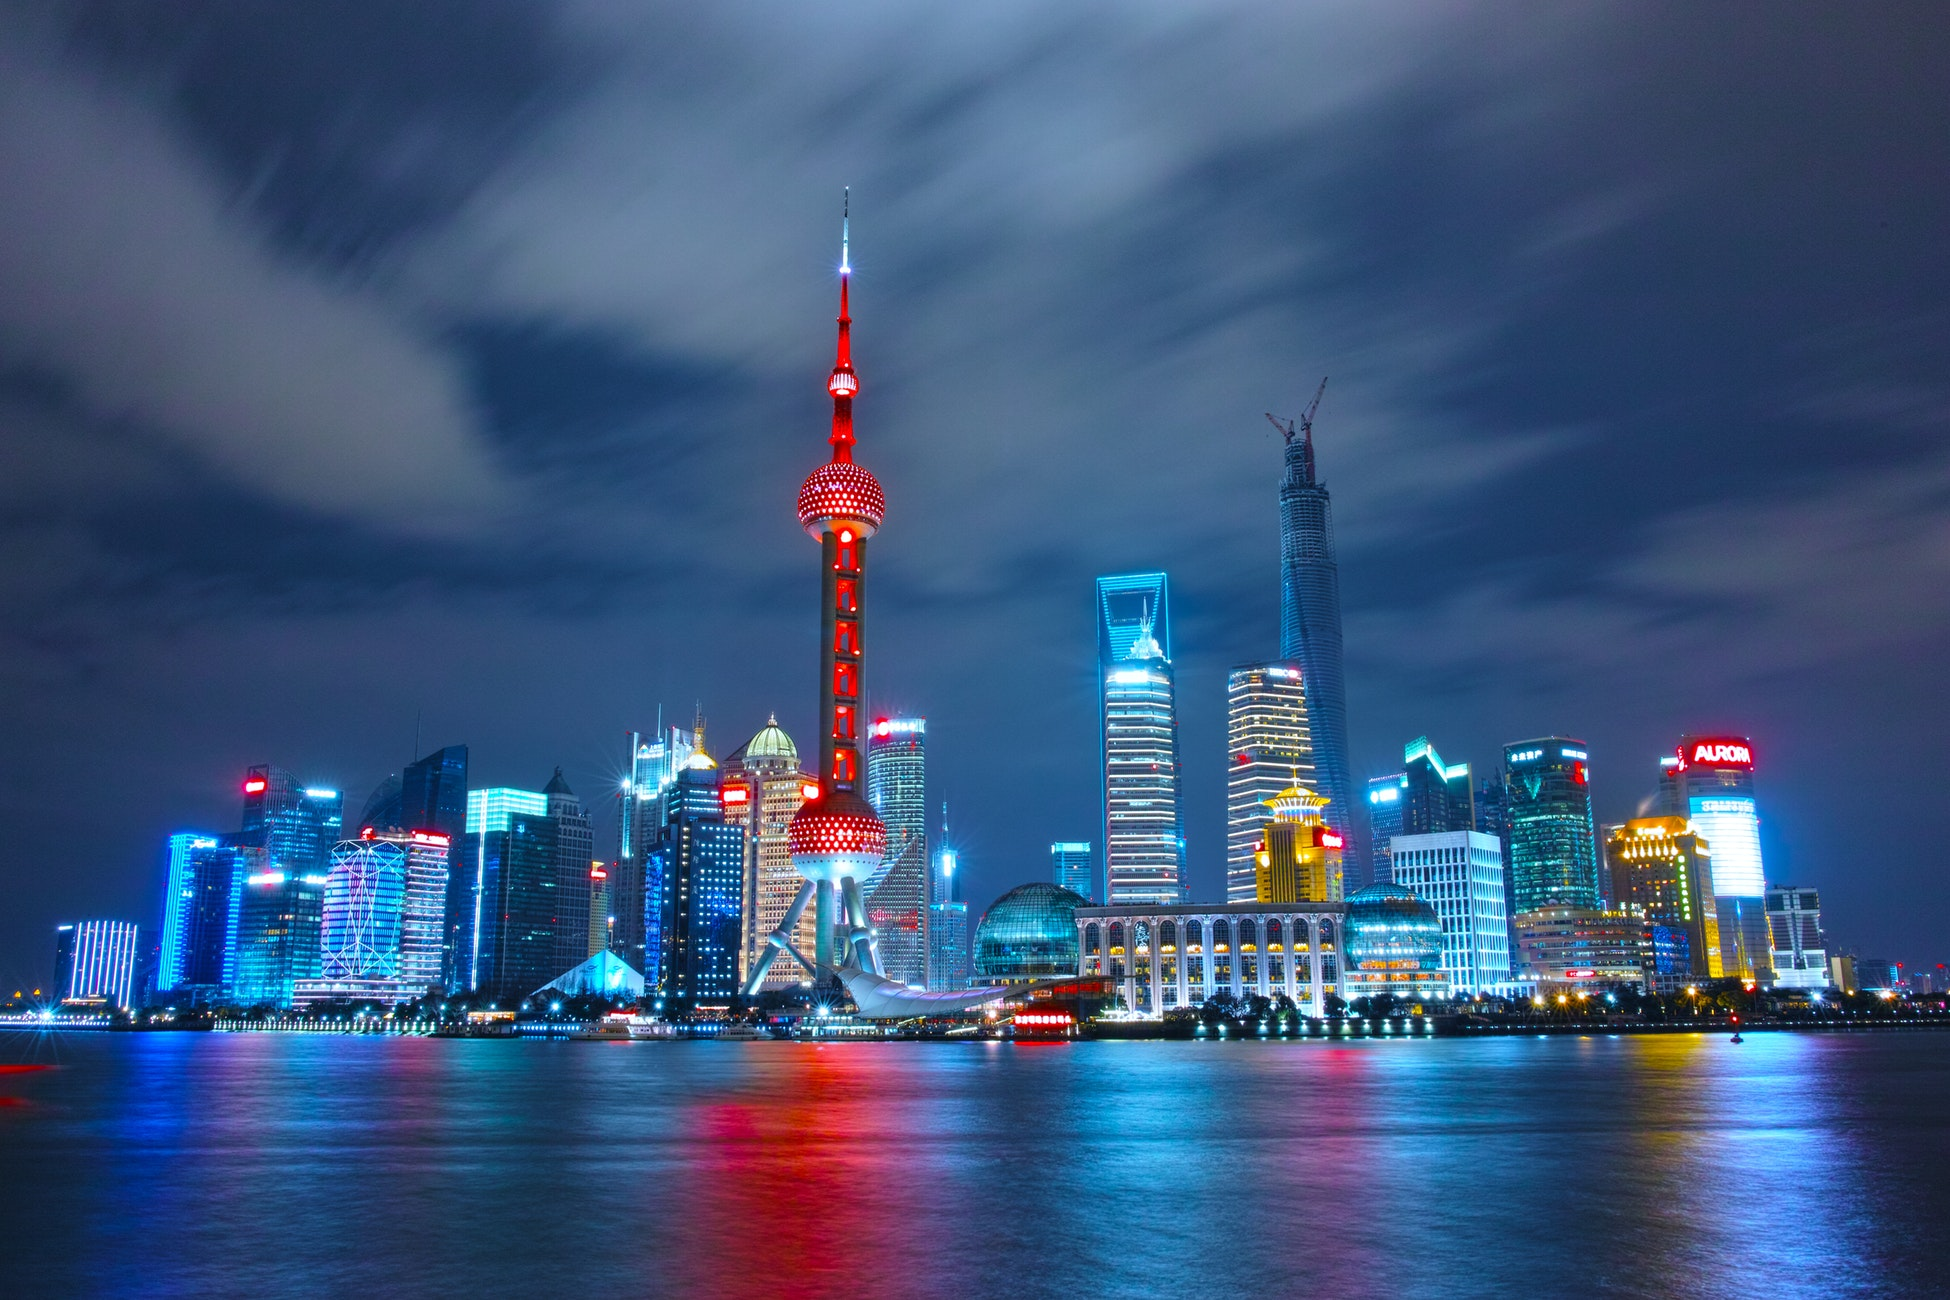 Photo of Shanghai, China and caption that UHWO is offering Chinese language classes for the first time this spring